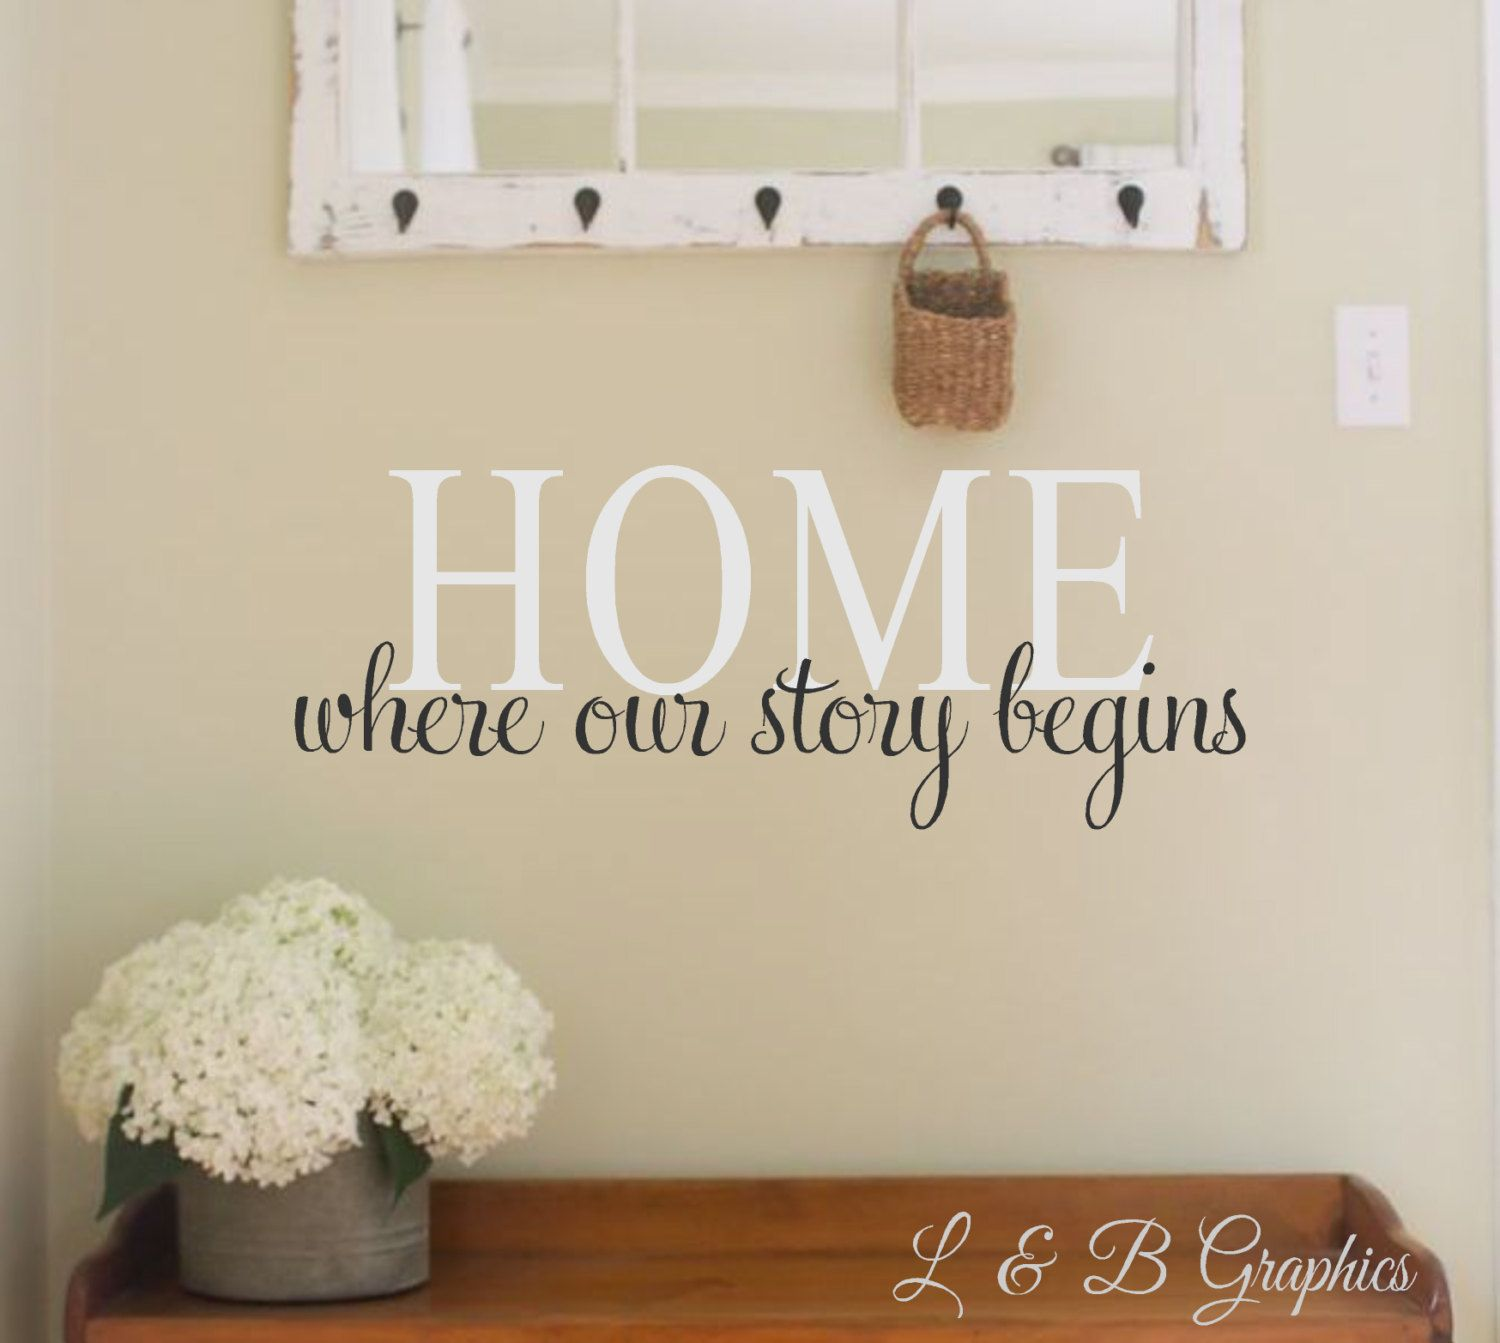 Home Where Our Story BeginsVinyl Wall Decal Wall Decal Wall - Wall decals entryway